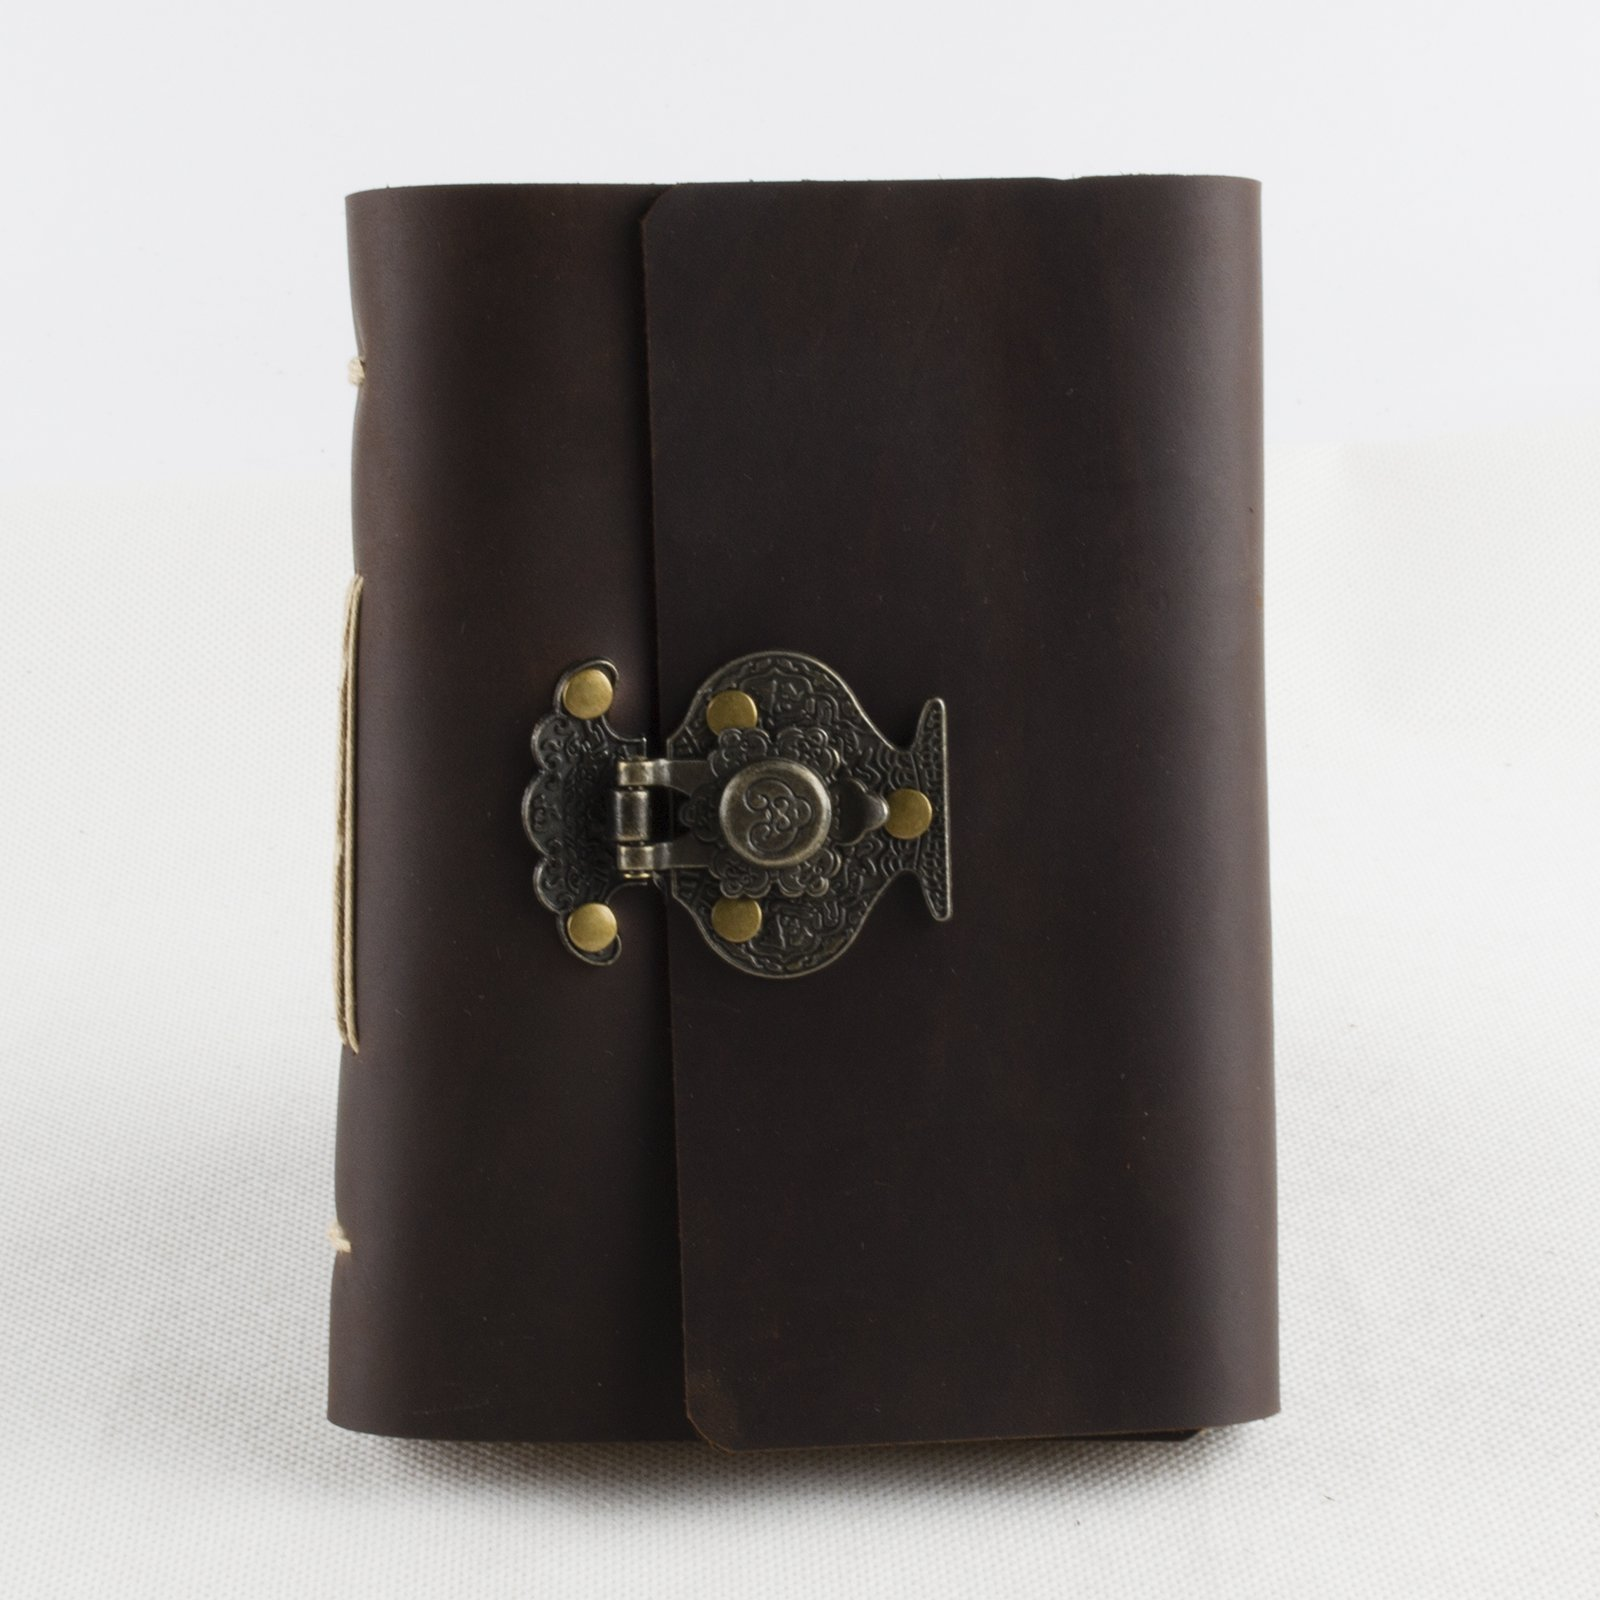 Ancicraft Leather Journal Diary Notebook A6 With Flower Vase Lock by Handmade Lined Craft Paper with Gift Box (A6-Flower vase-Lined craft paper)